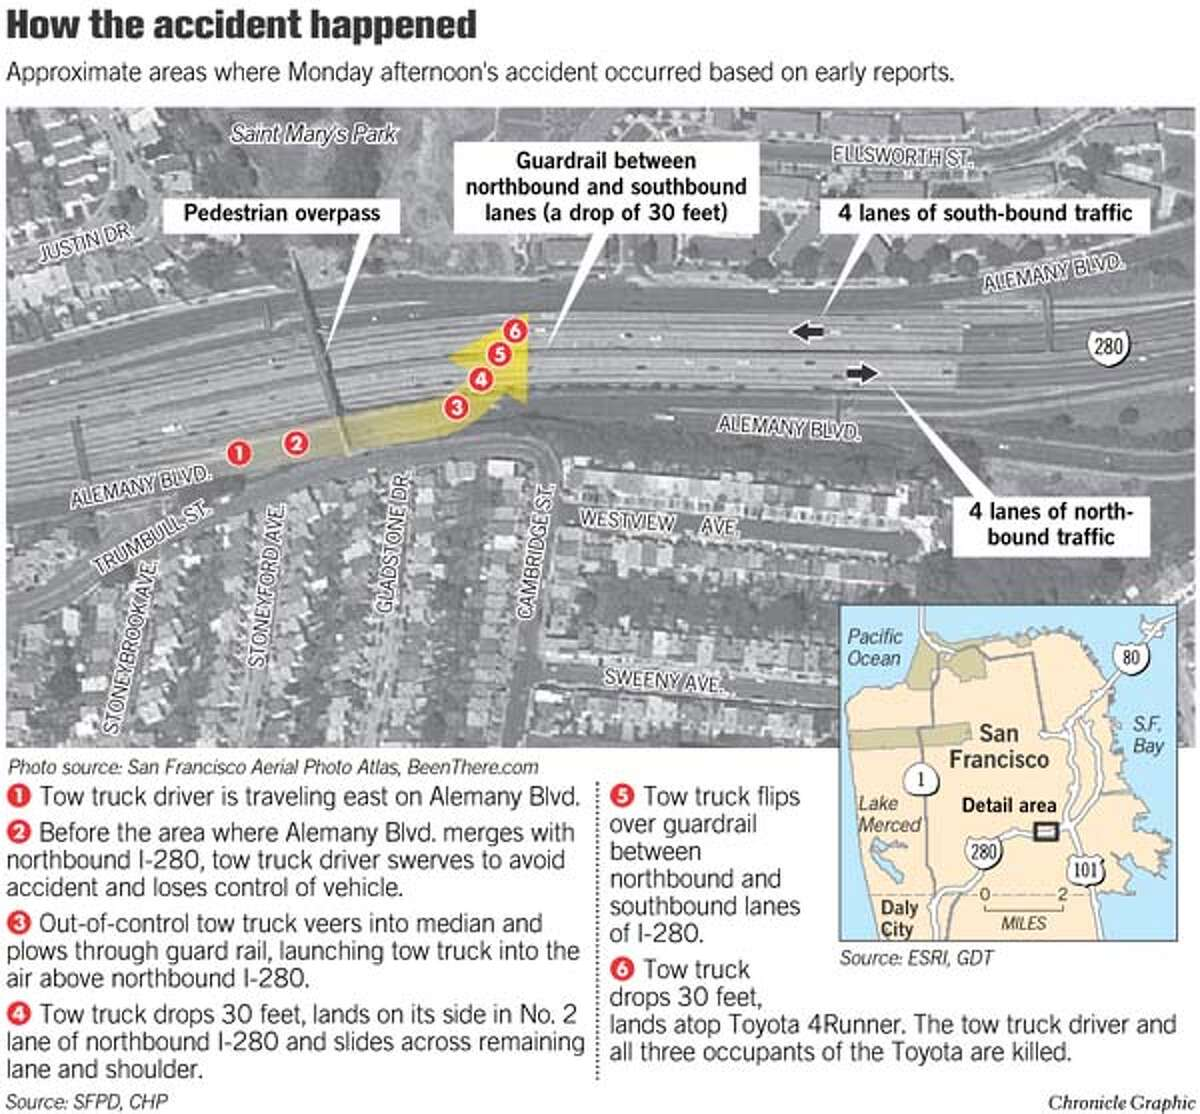 How the Accident Happened. Photo source: San Francisco Aerial Photo Atlas, BeenThere.com. Chronicle Graphic